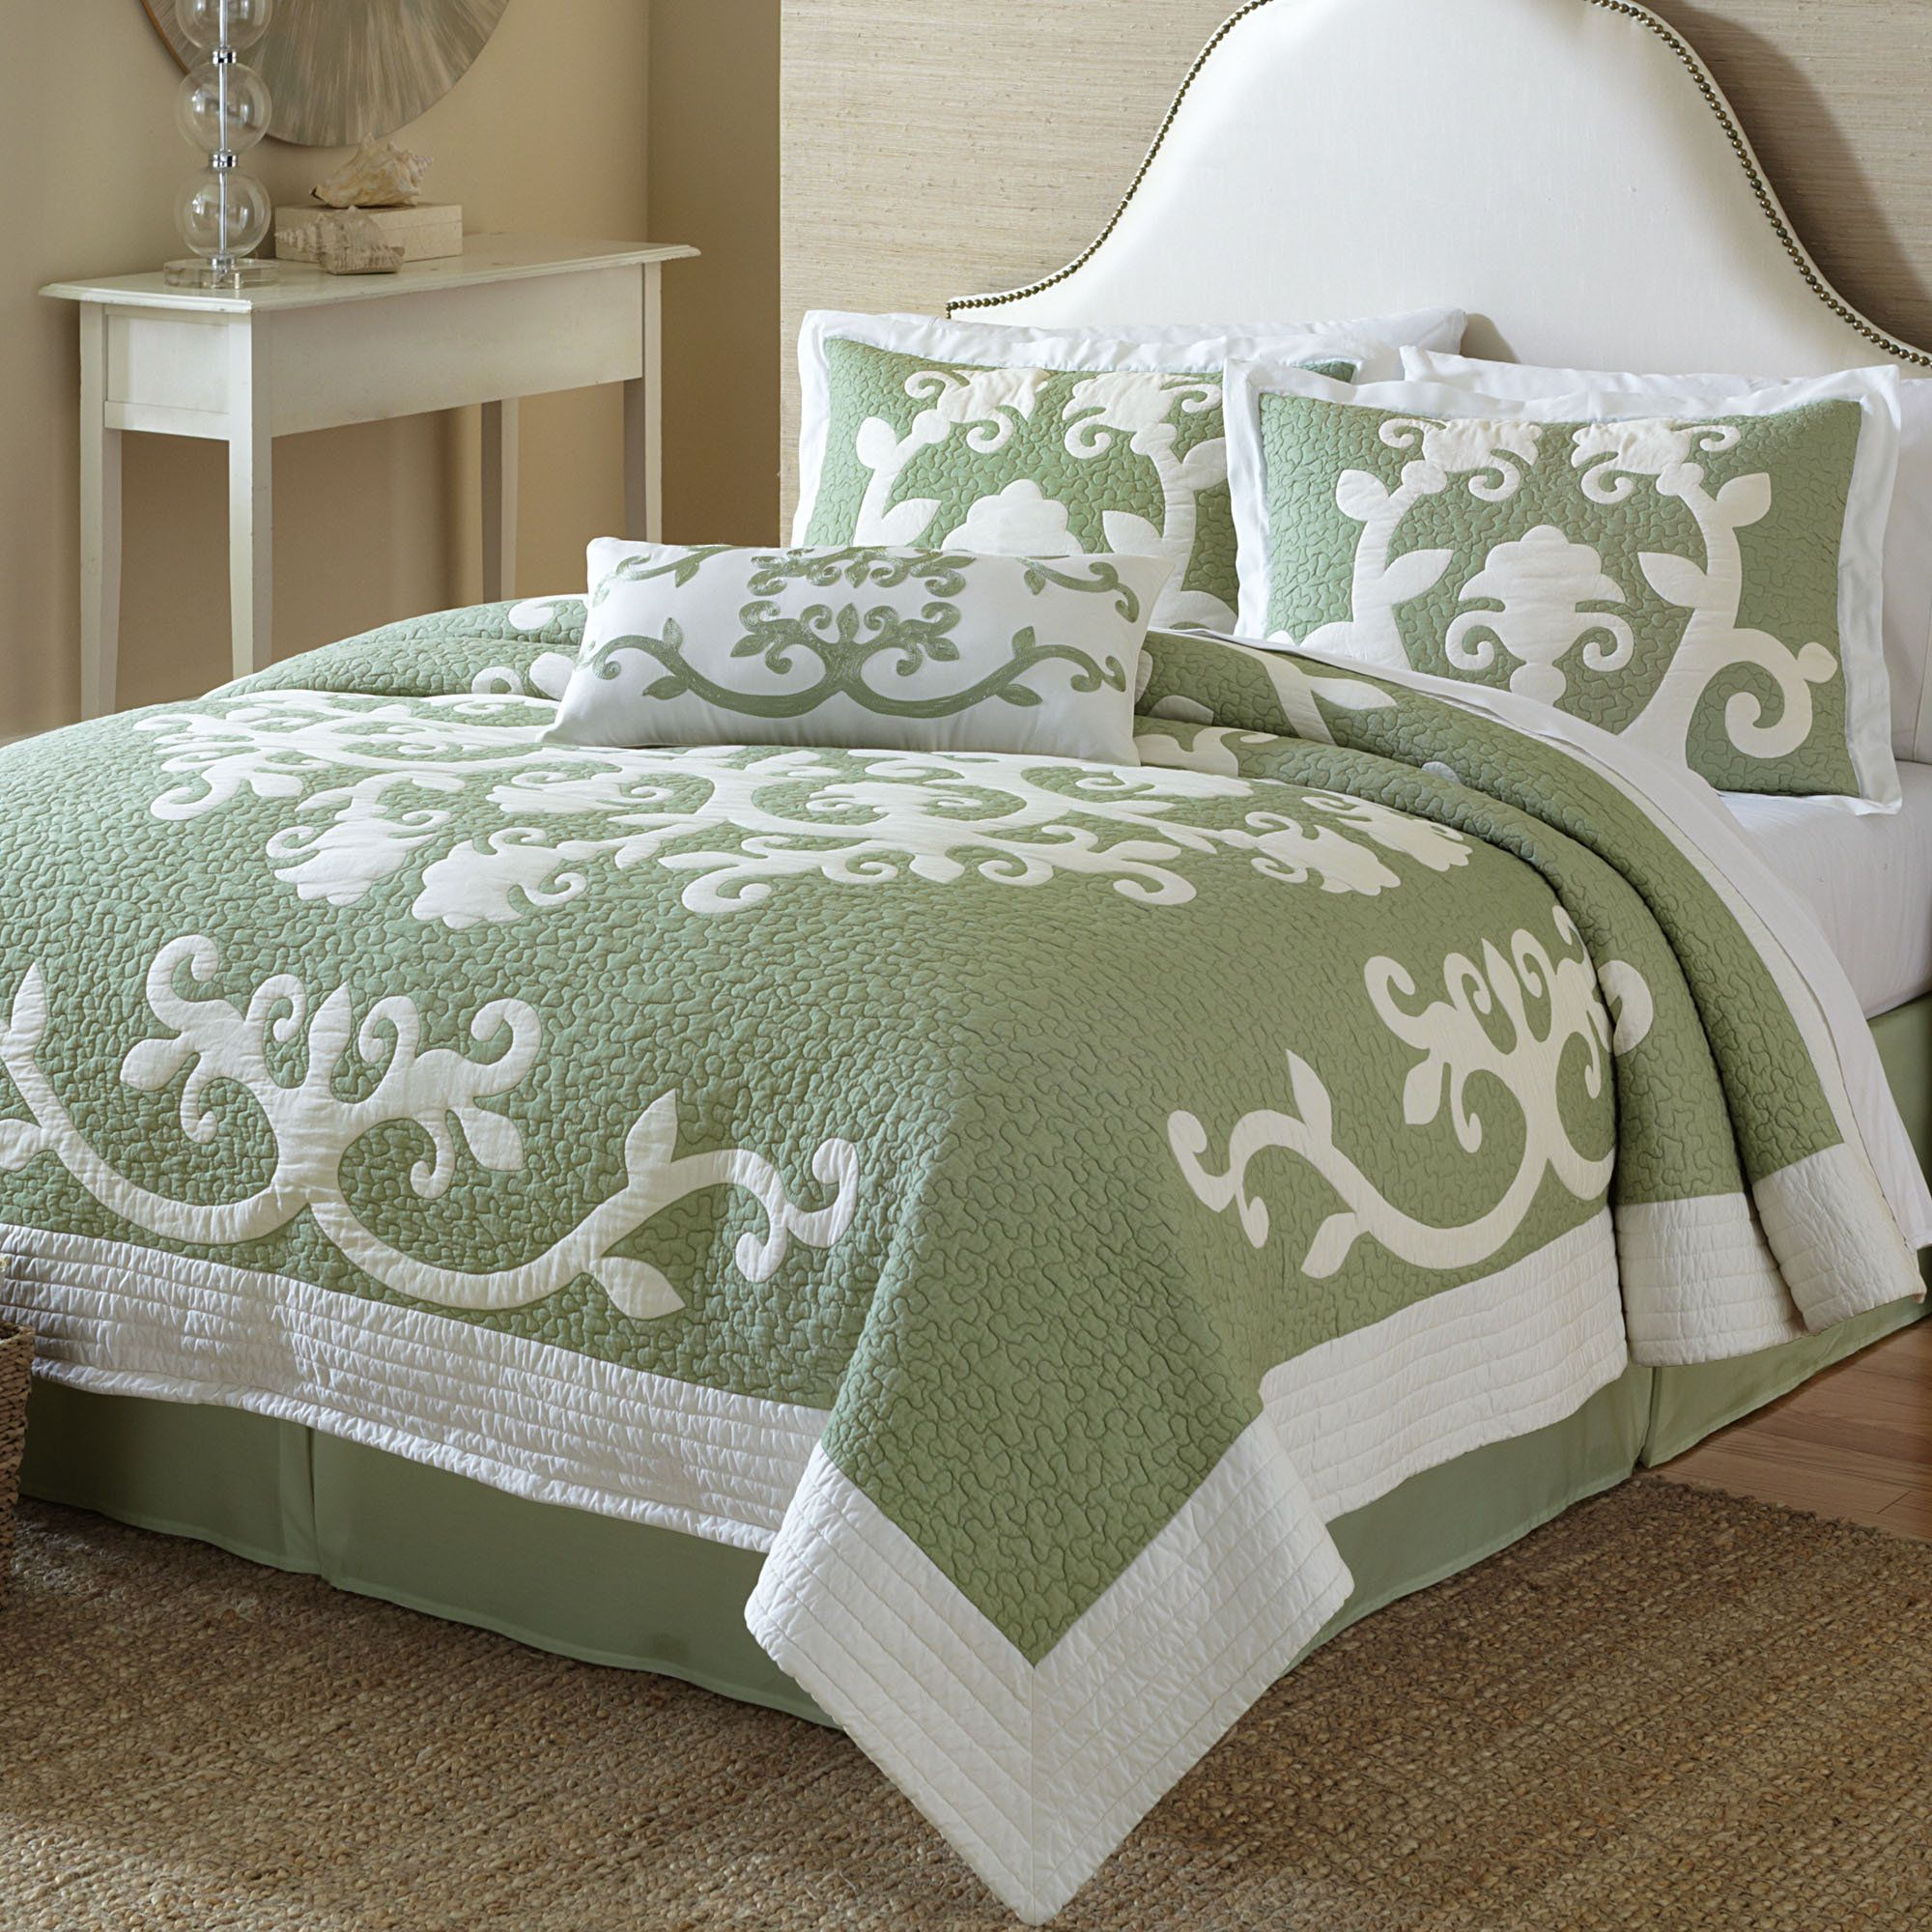 Ailani Cotton Hawaiian Inspired Quilt Bedding Bedrooms